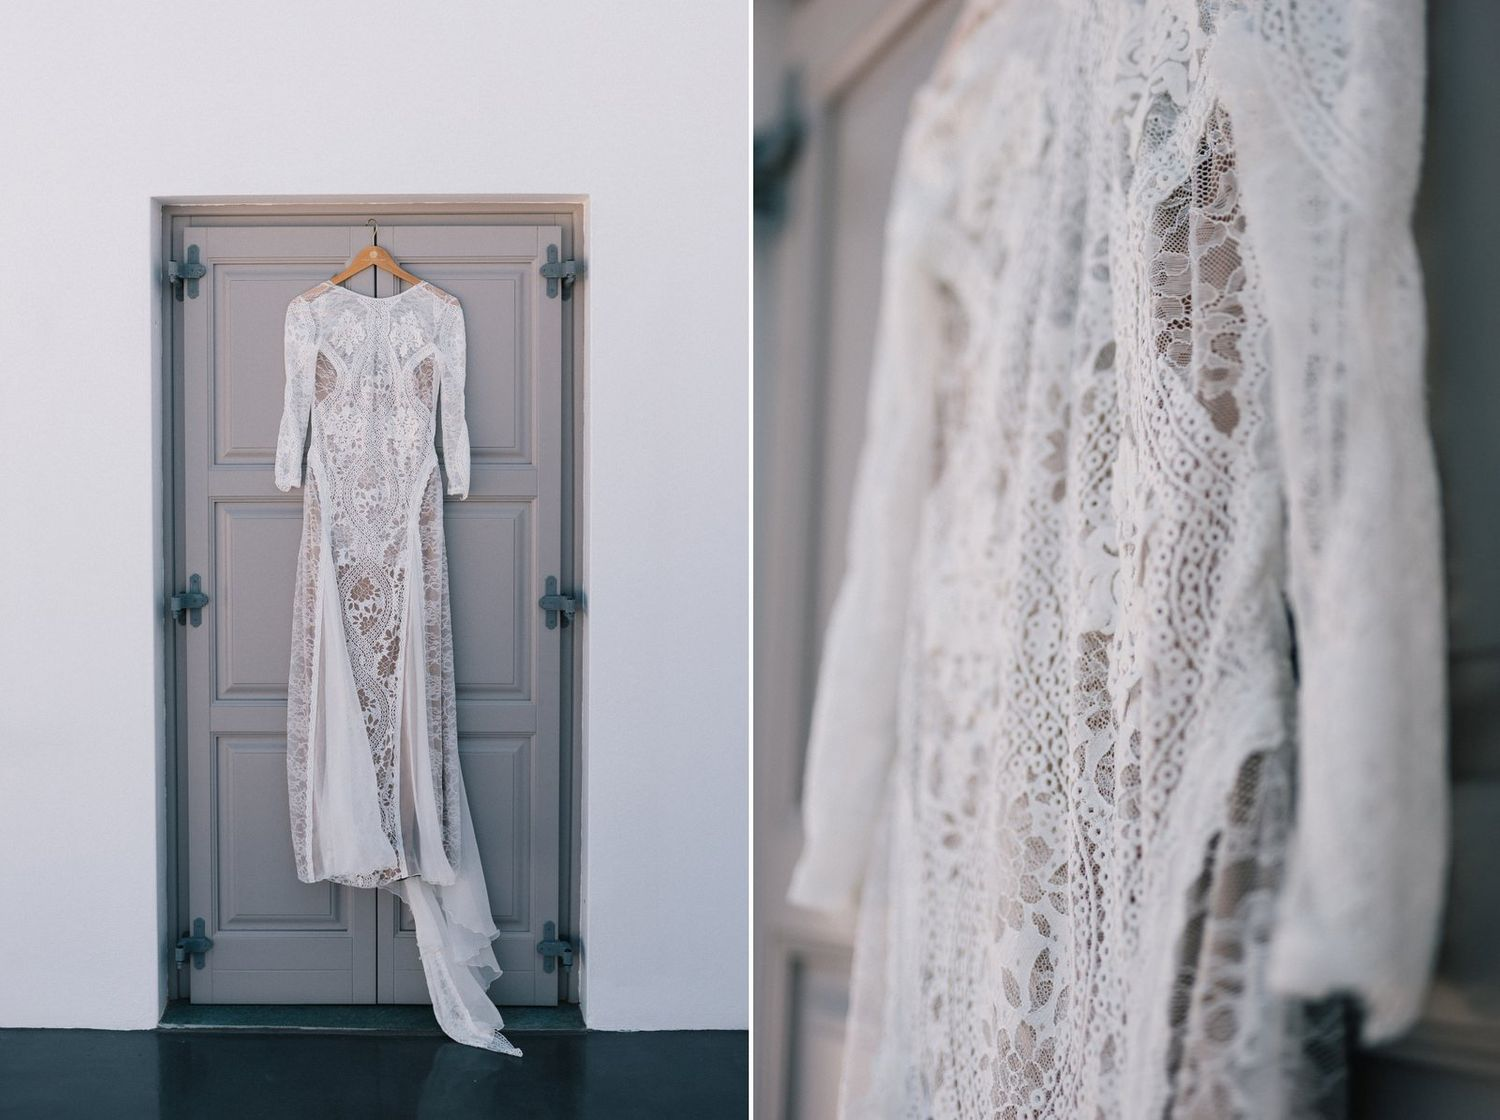 amazing wedding dress from Grace Loves Laces in folegandros